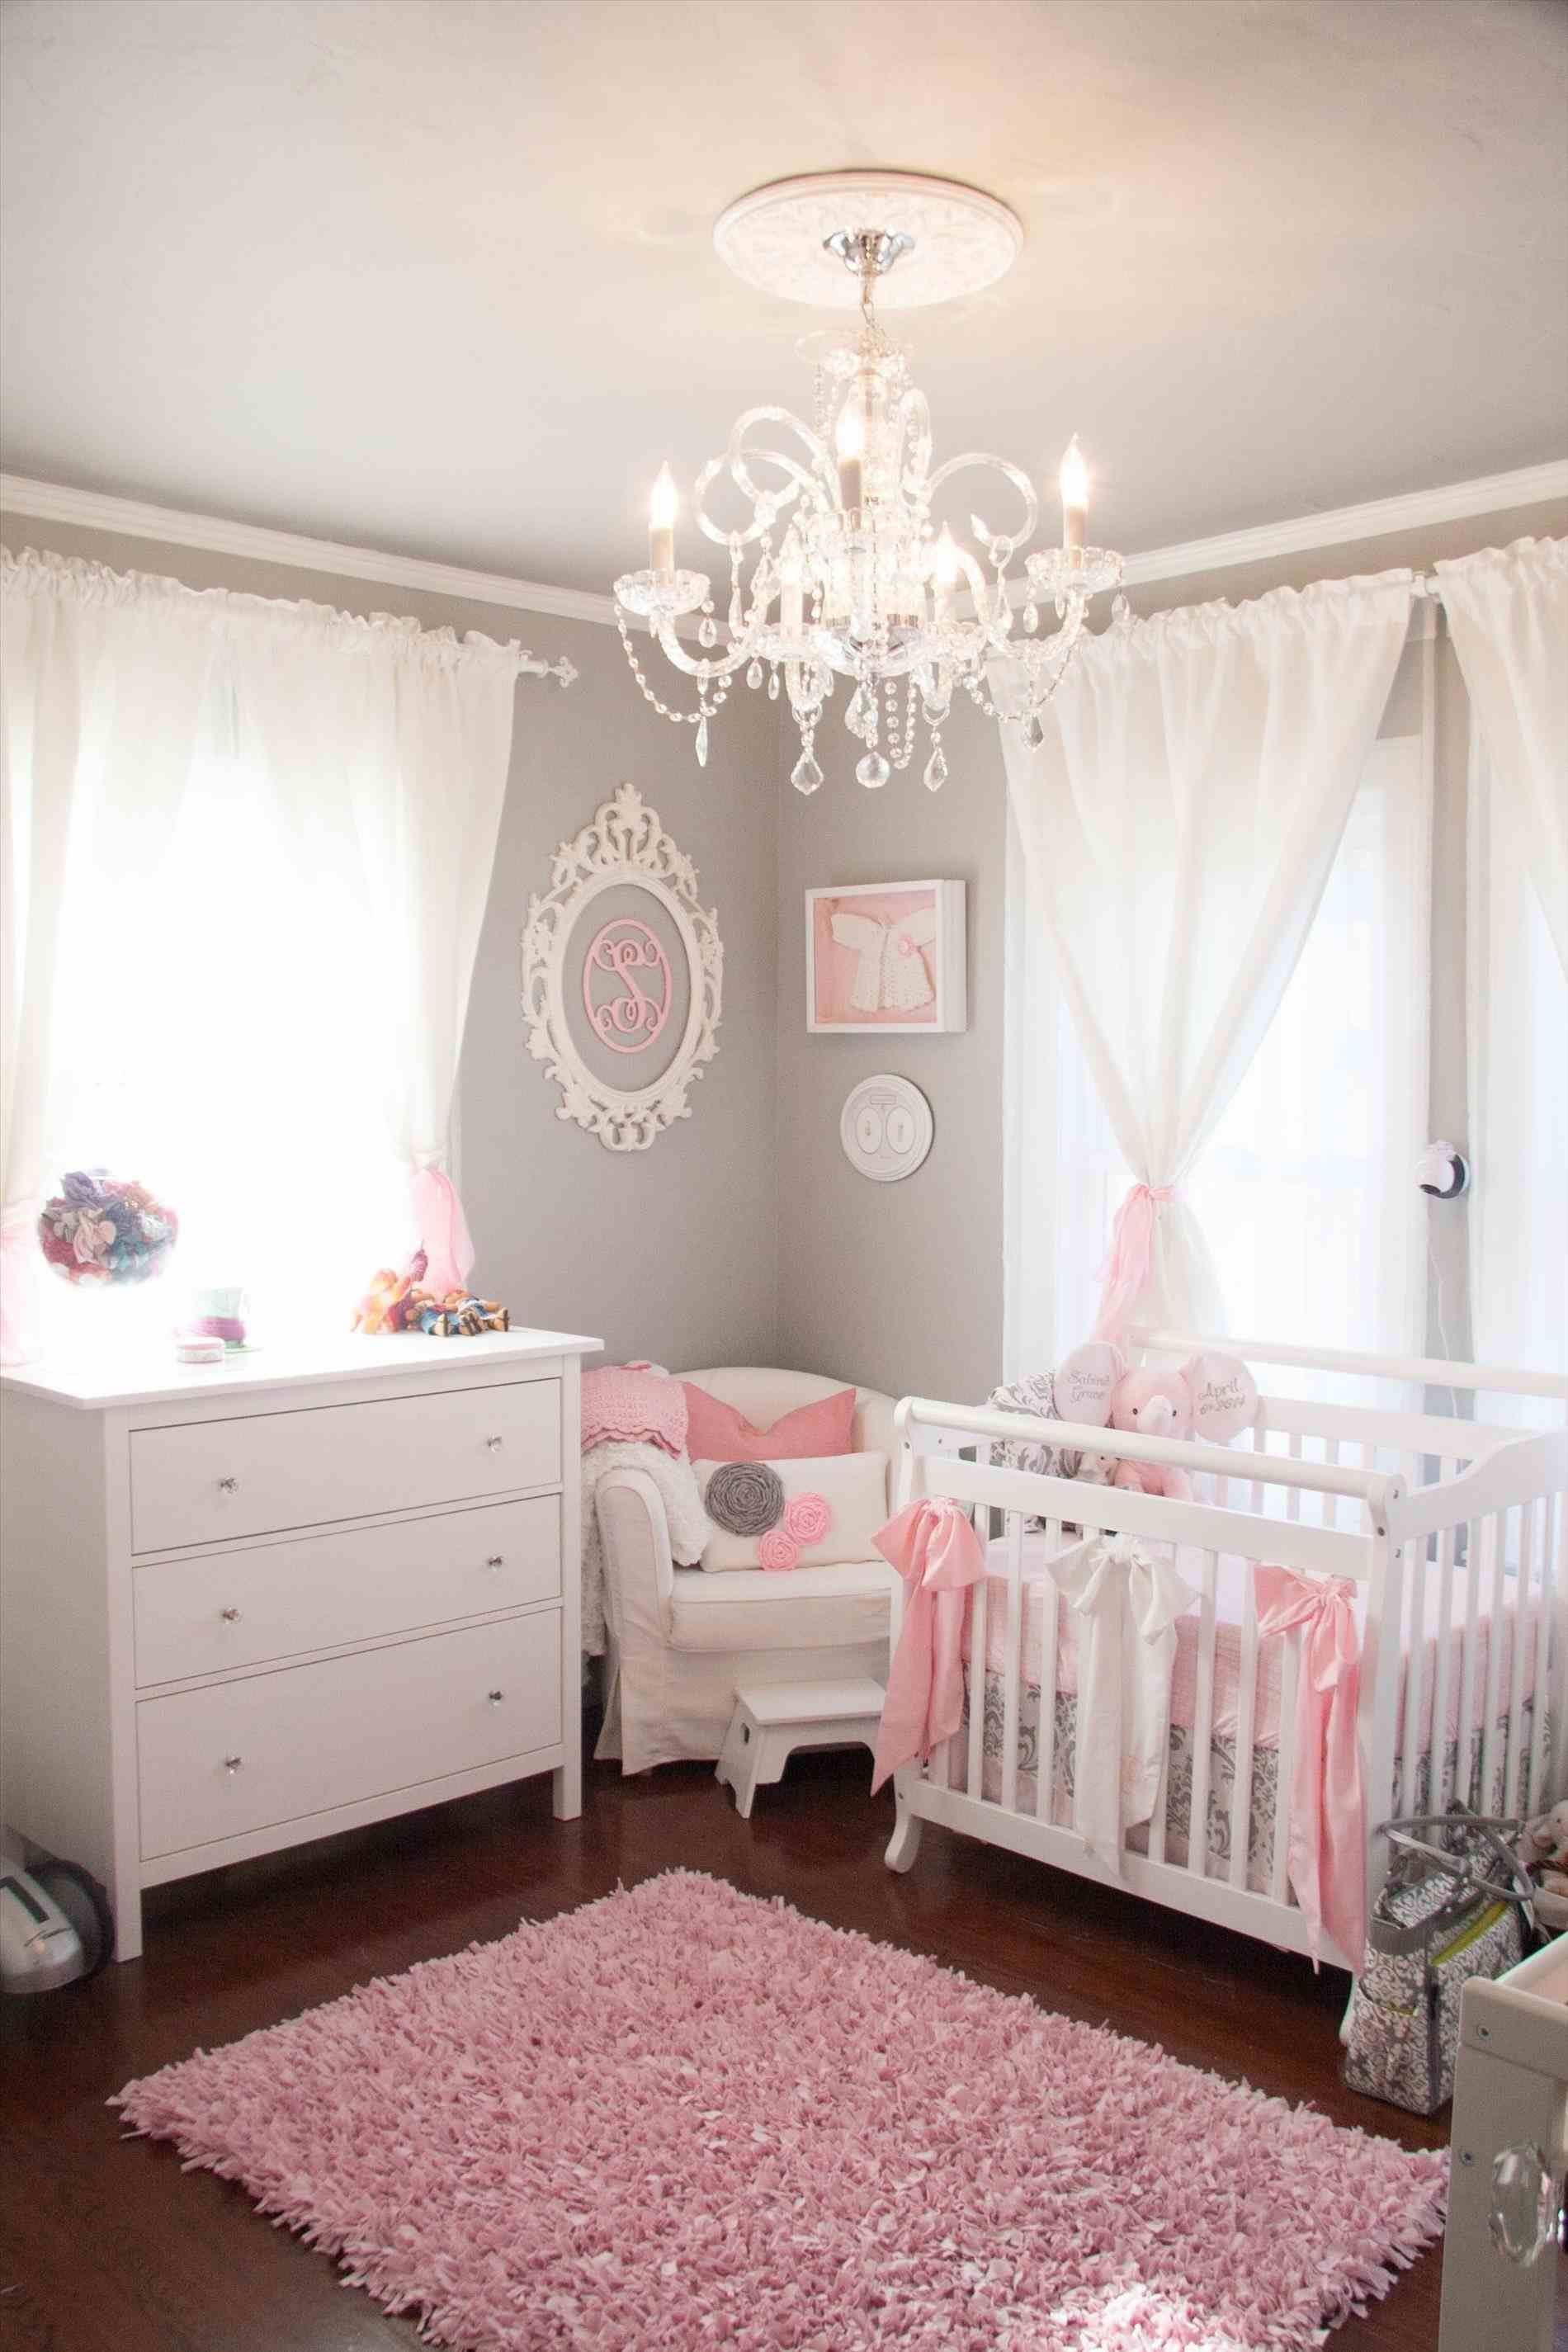 princess baby bedroom ideas | Baby room decor, Baby decor ...